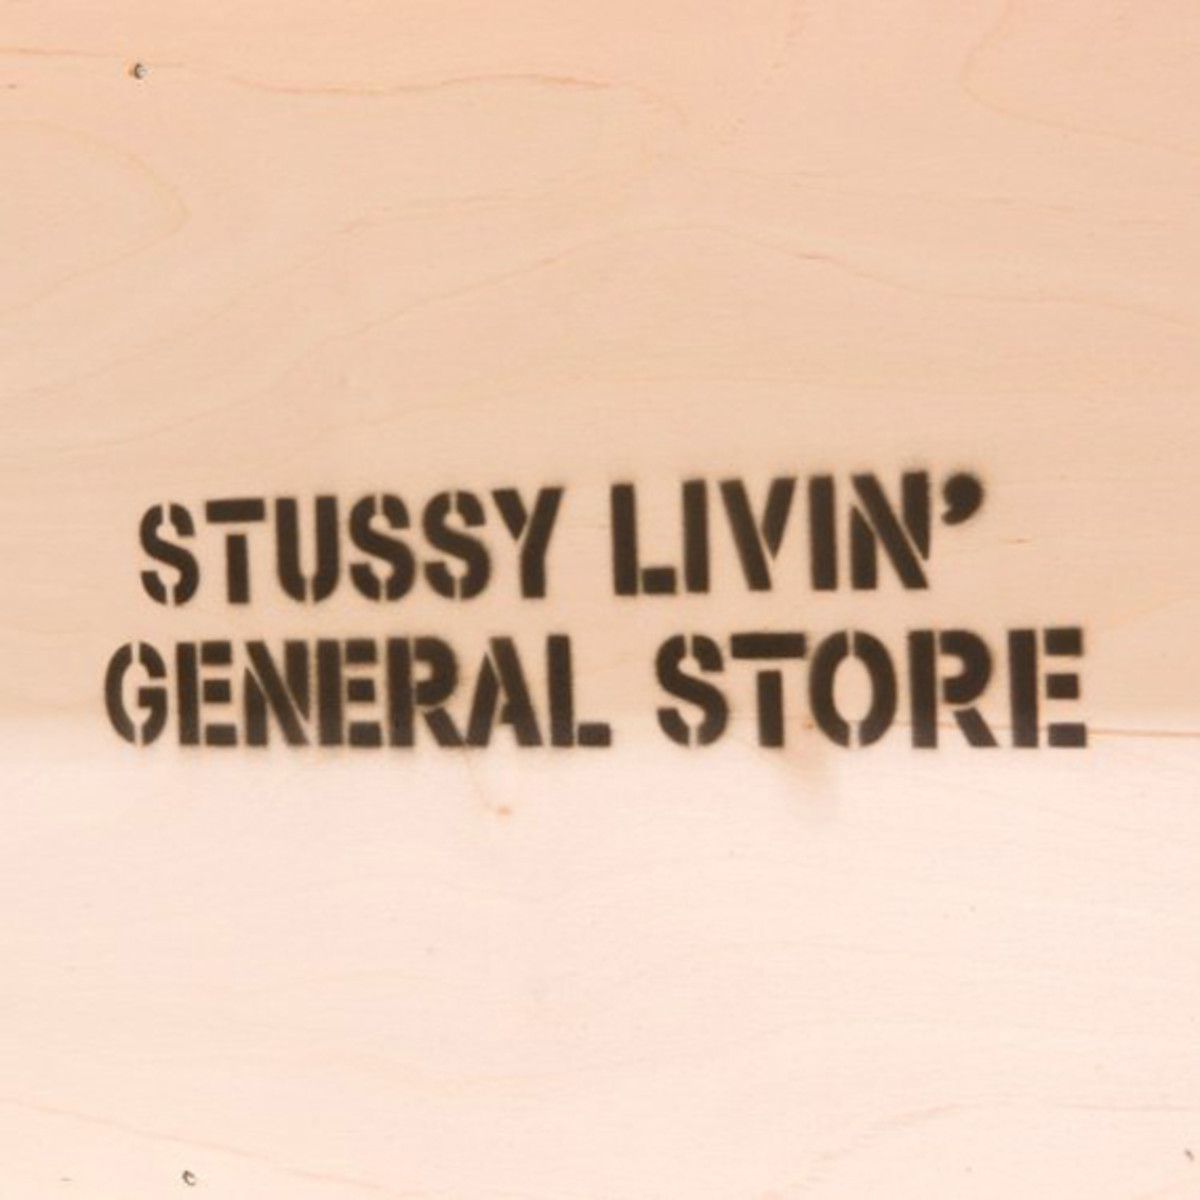 stussy-livin-general-store-go-out-rhino-trunk-realtree-armor-trunk-04